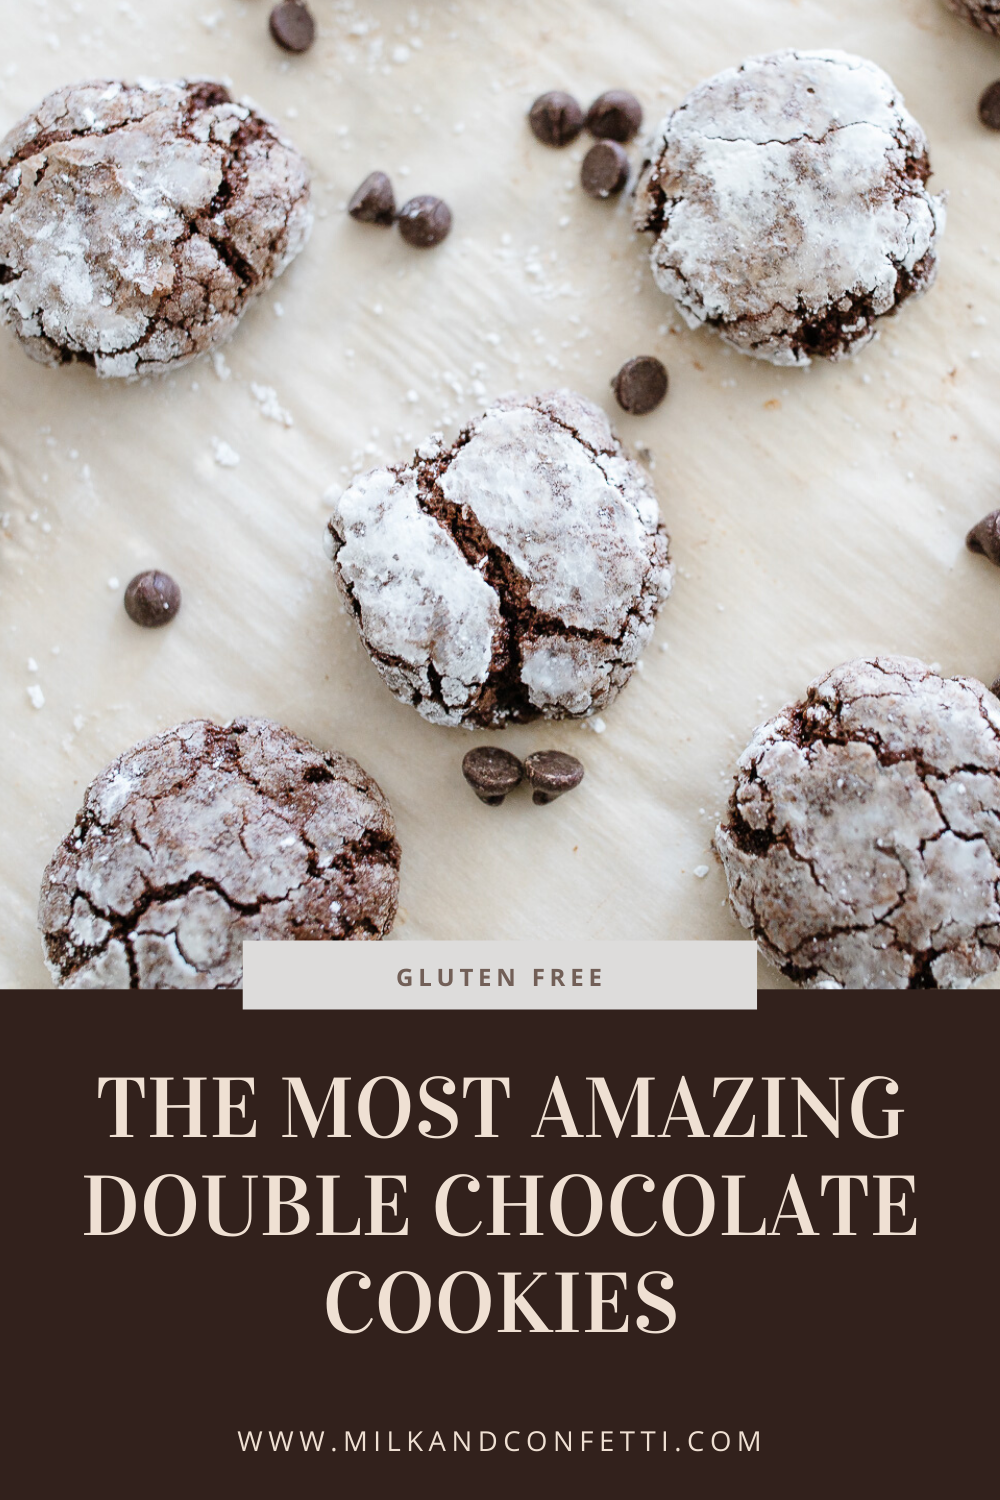 A double chocolate cookie recipe that is easy, delicious and gluten free!